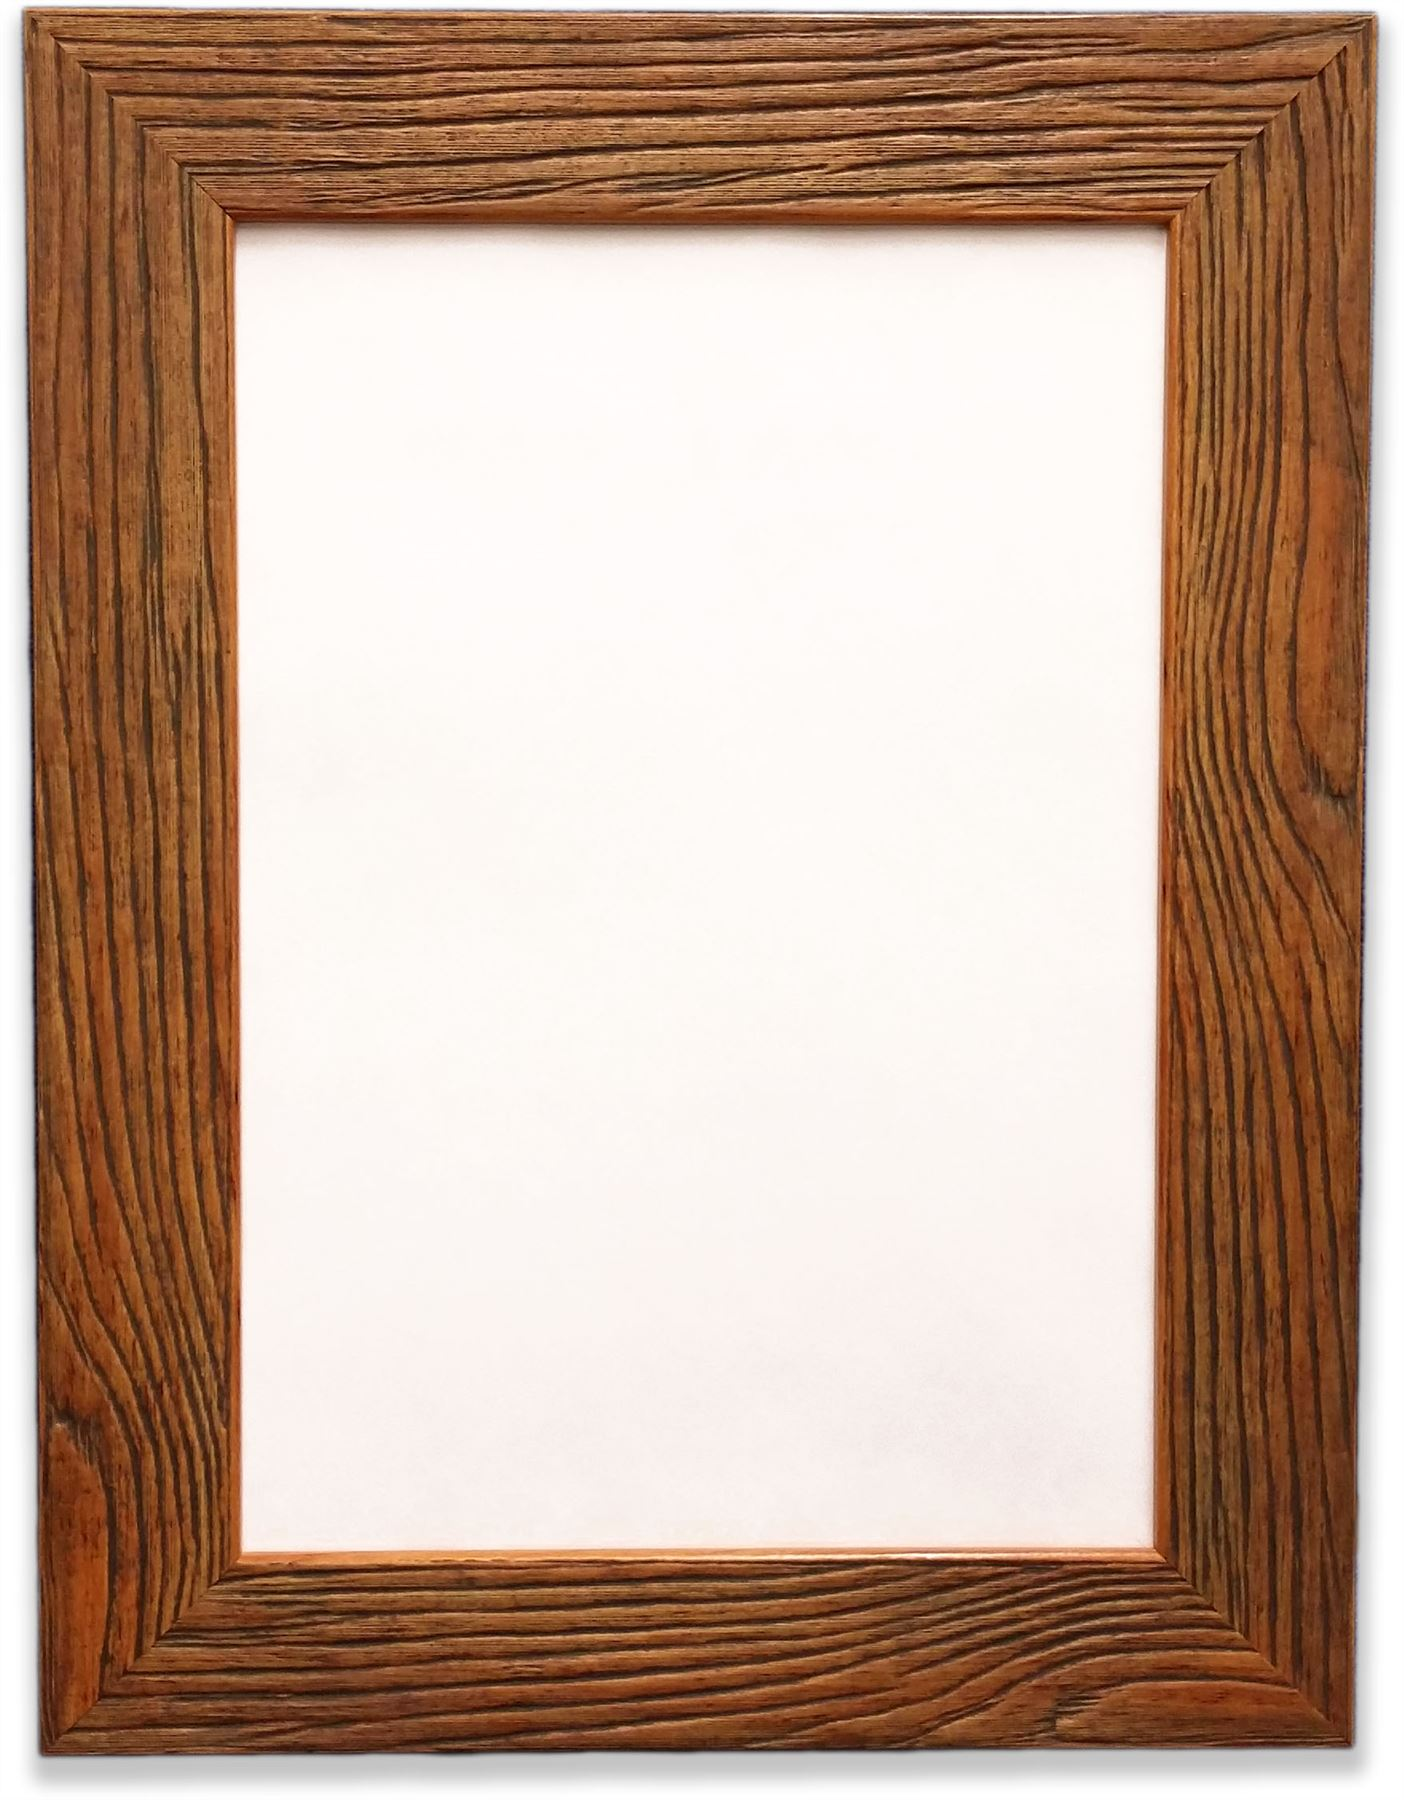 Dark Rustic Wood Grain Finish Photo/Picture Frame 43mm ...